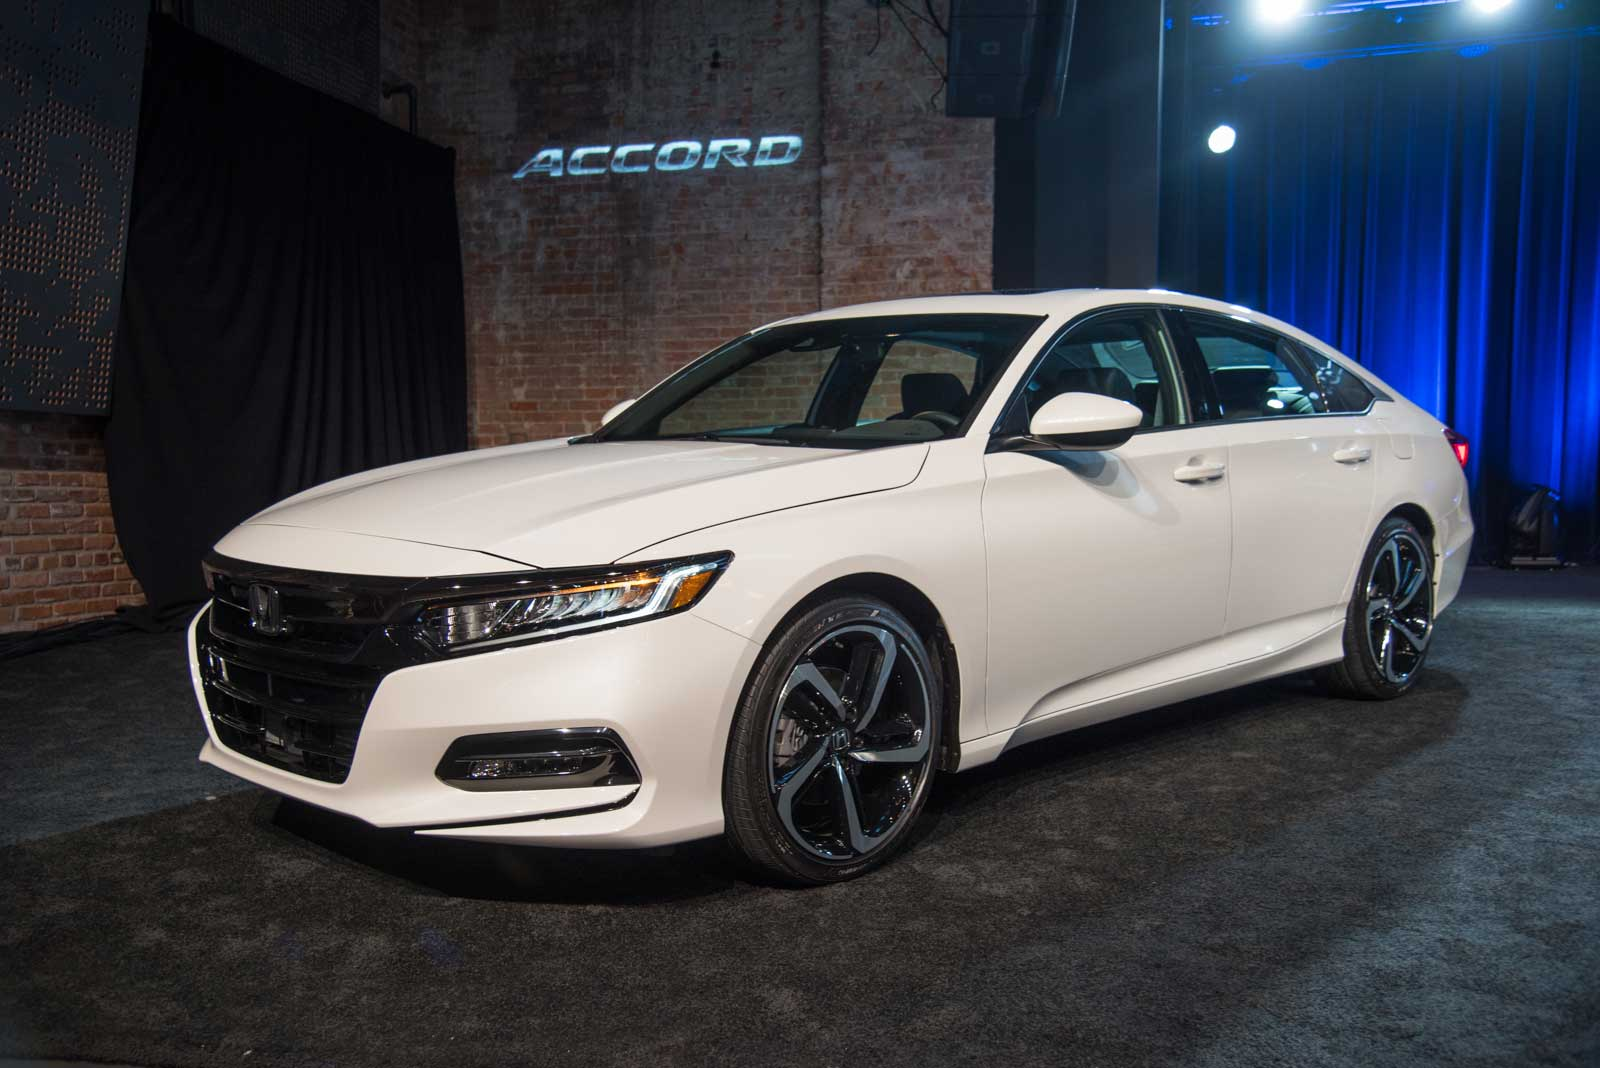 2018 honda accord debuts with turbo engines 10 speed transmission news. Black Bedroom Furniture Sets. Home Design Ideas